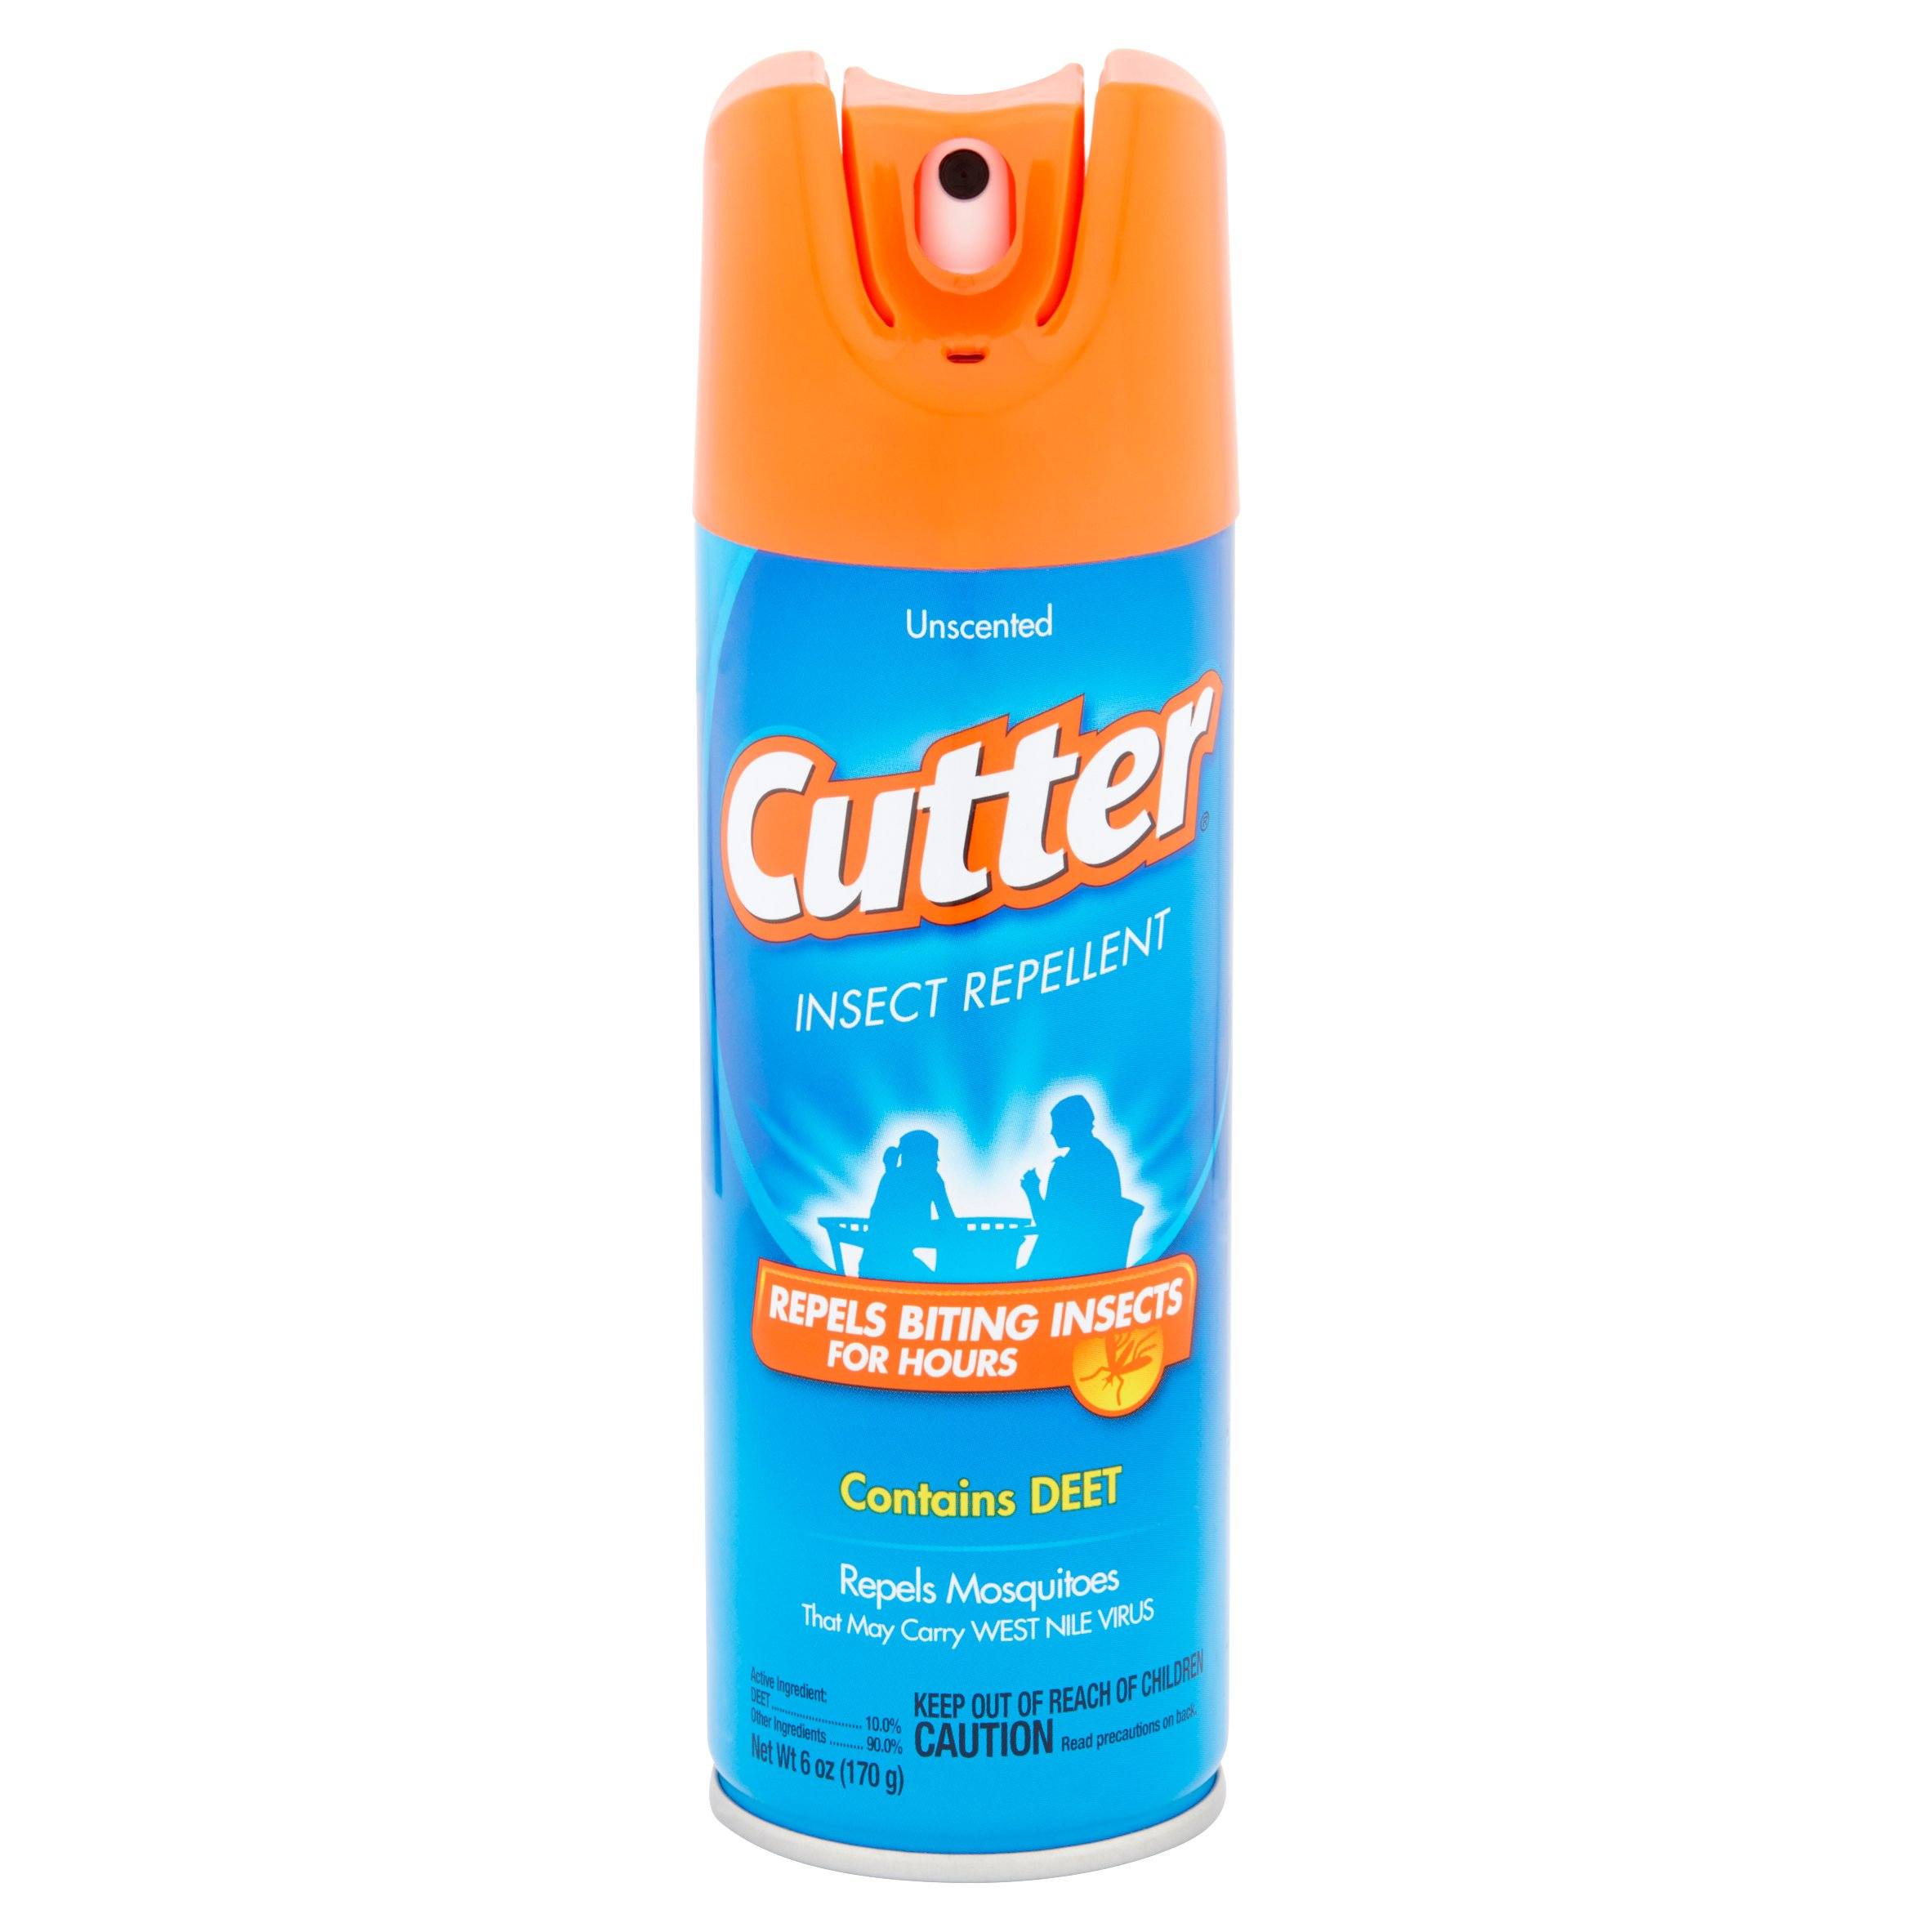 Cutter 10-Percent Deet Unscented Mosquito Insect Repellent, 6-Ounce